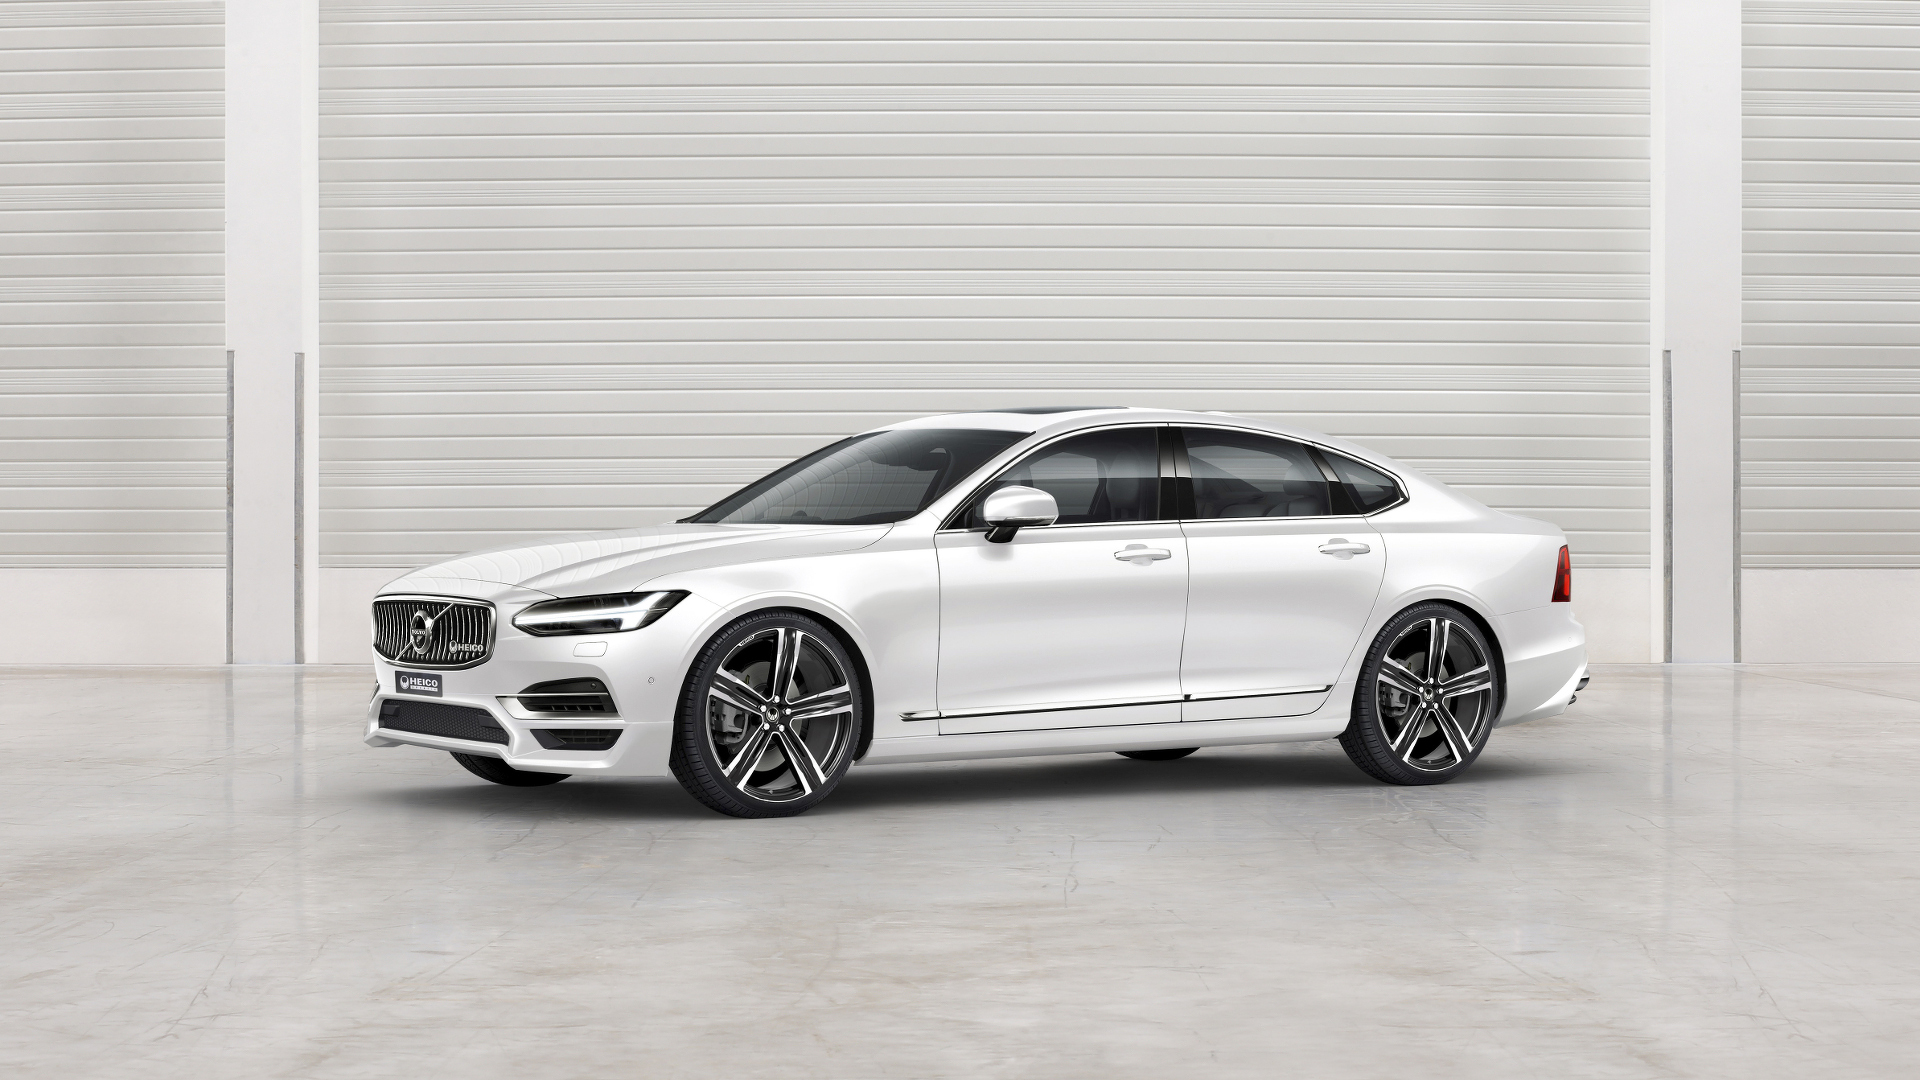 Volvo S90 and V90 get slight power boost to 285 hp by Heico Sportiv